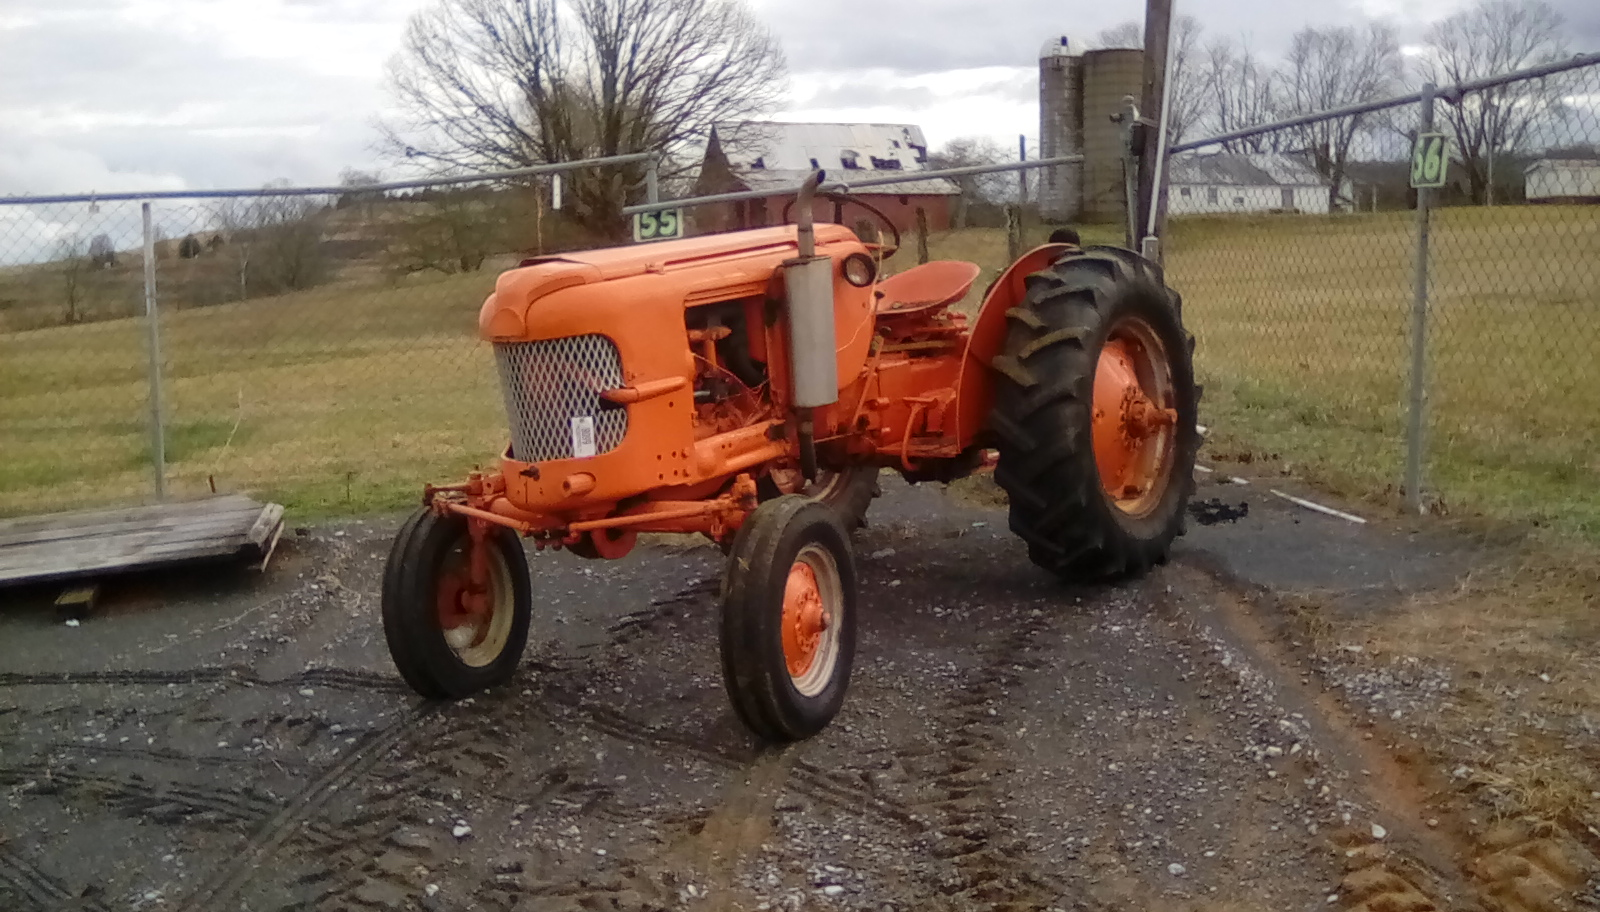 ORANGE CASE 311 TRACTOR Image